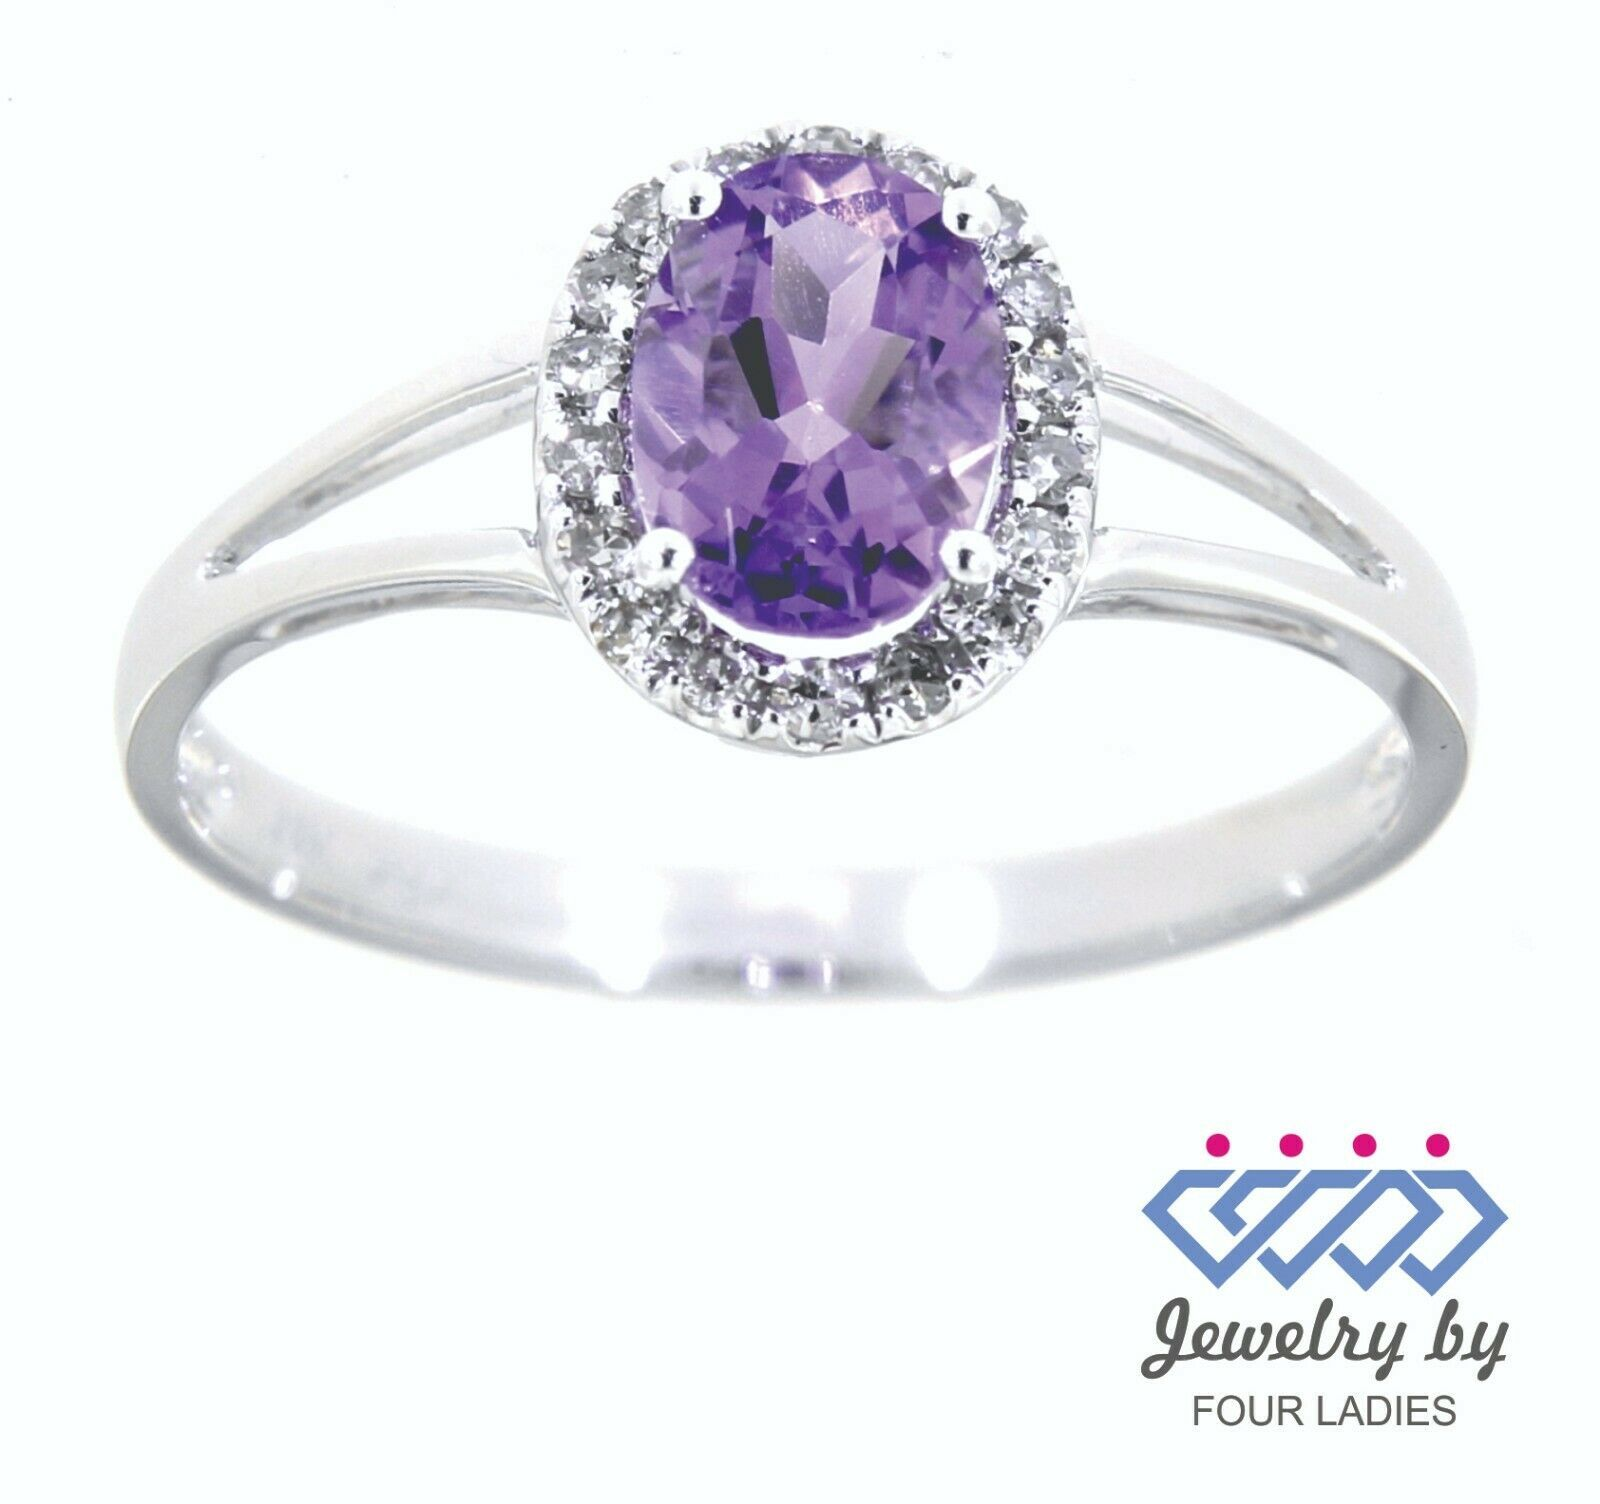 Primary image for Amethyst Birthstone 14K White Gold 0.45CT Real Natural Halo Diamond Ring